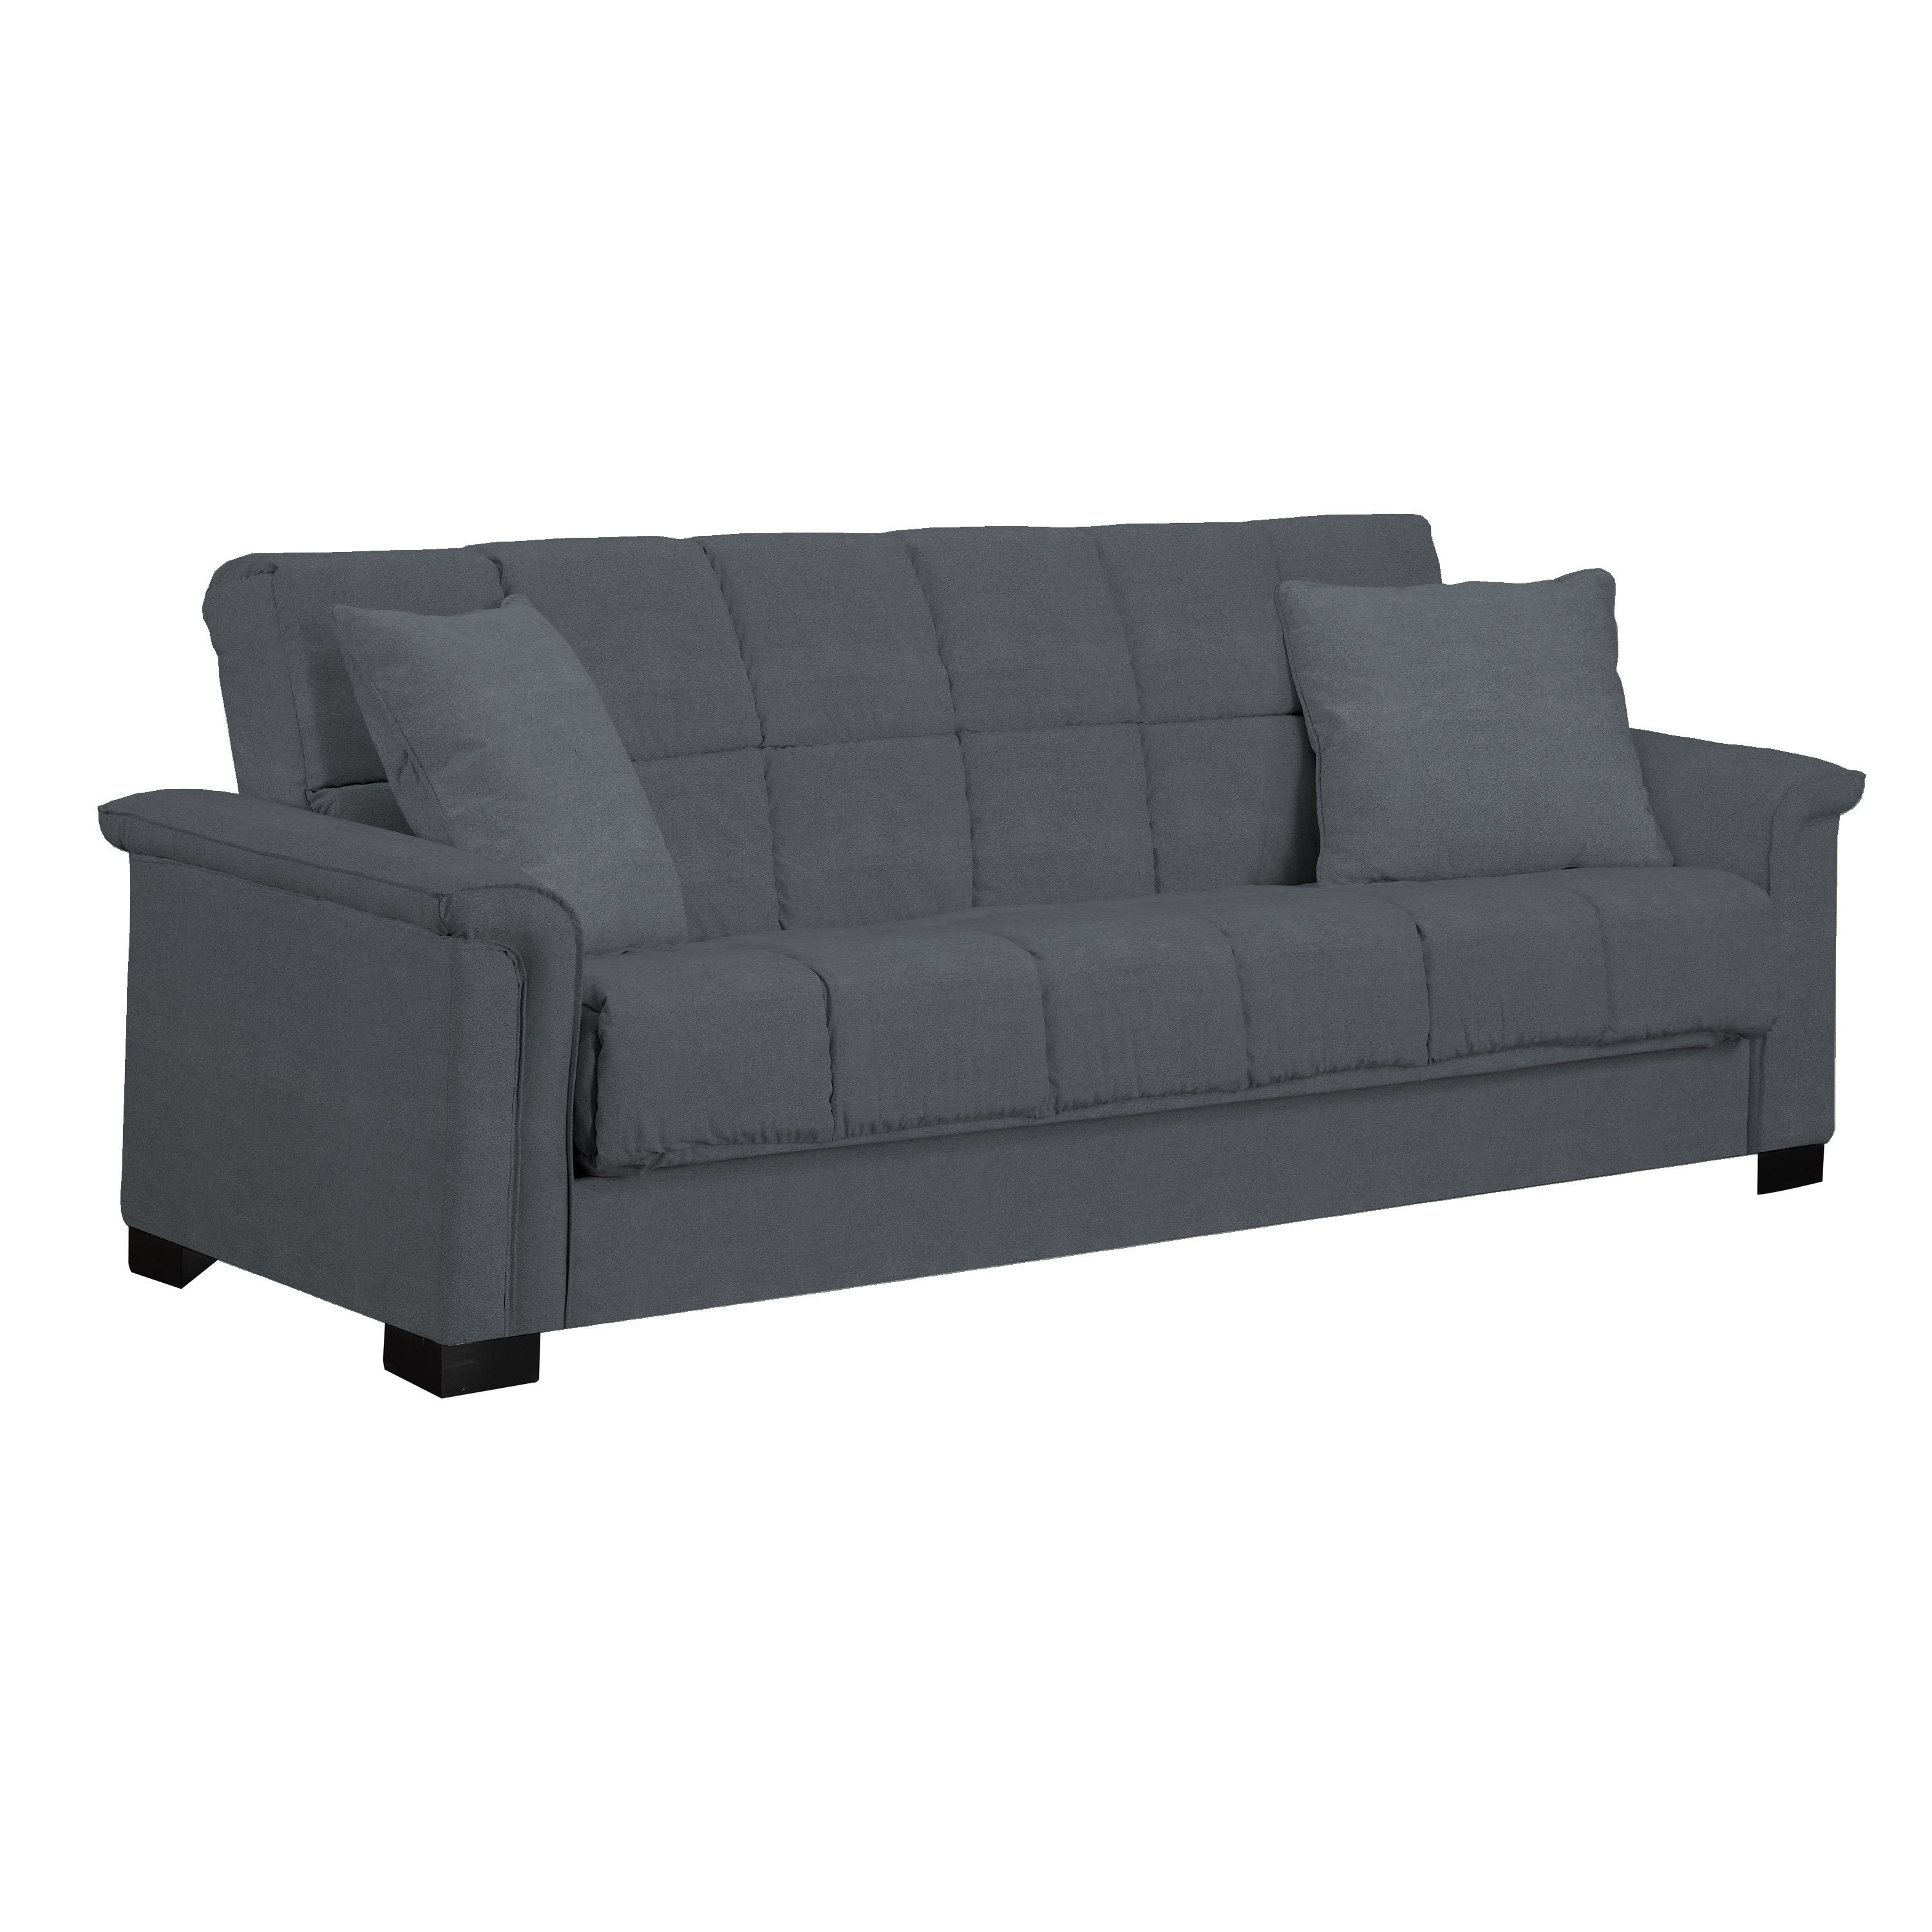 handy living caroline grey microfiber convertacouch sleeper sofa  - handy living caroline grey microfiber convertacouch sleeper sofa  freeshipping today  overstockcom